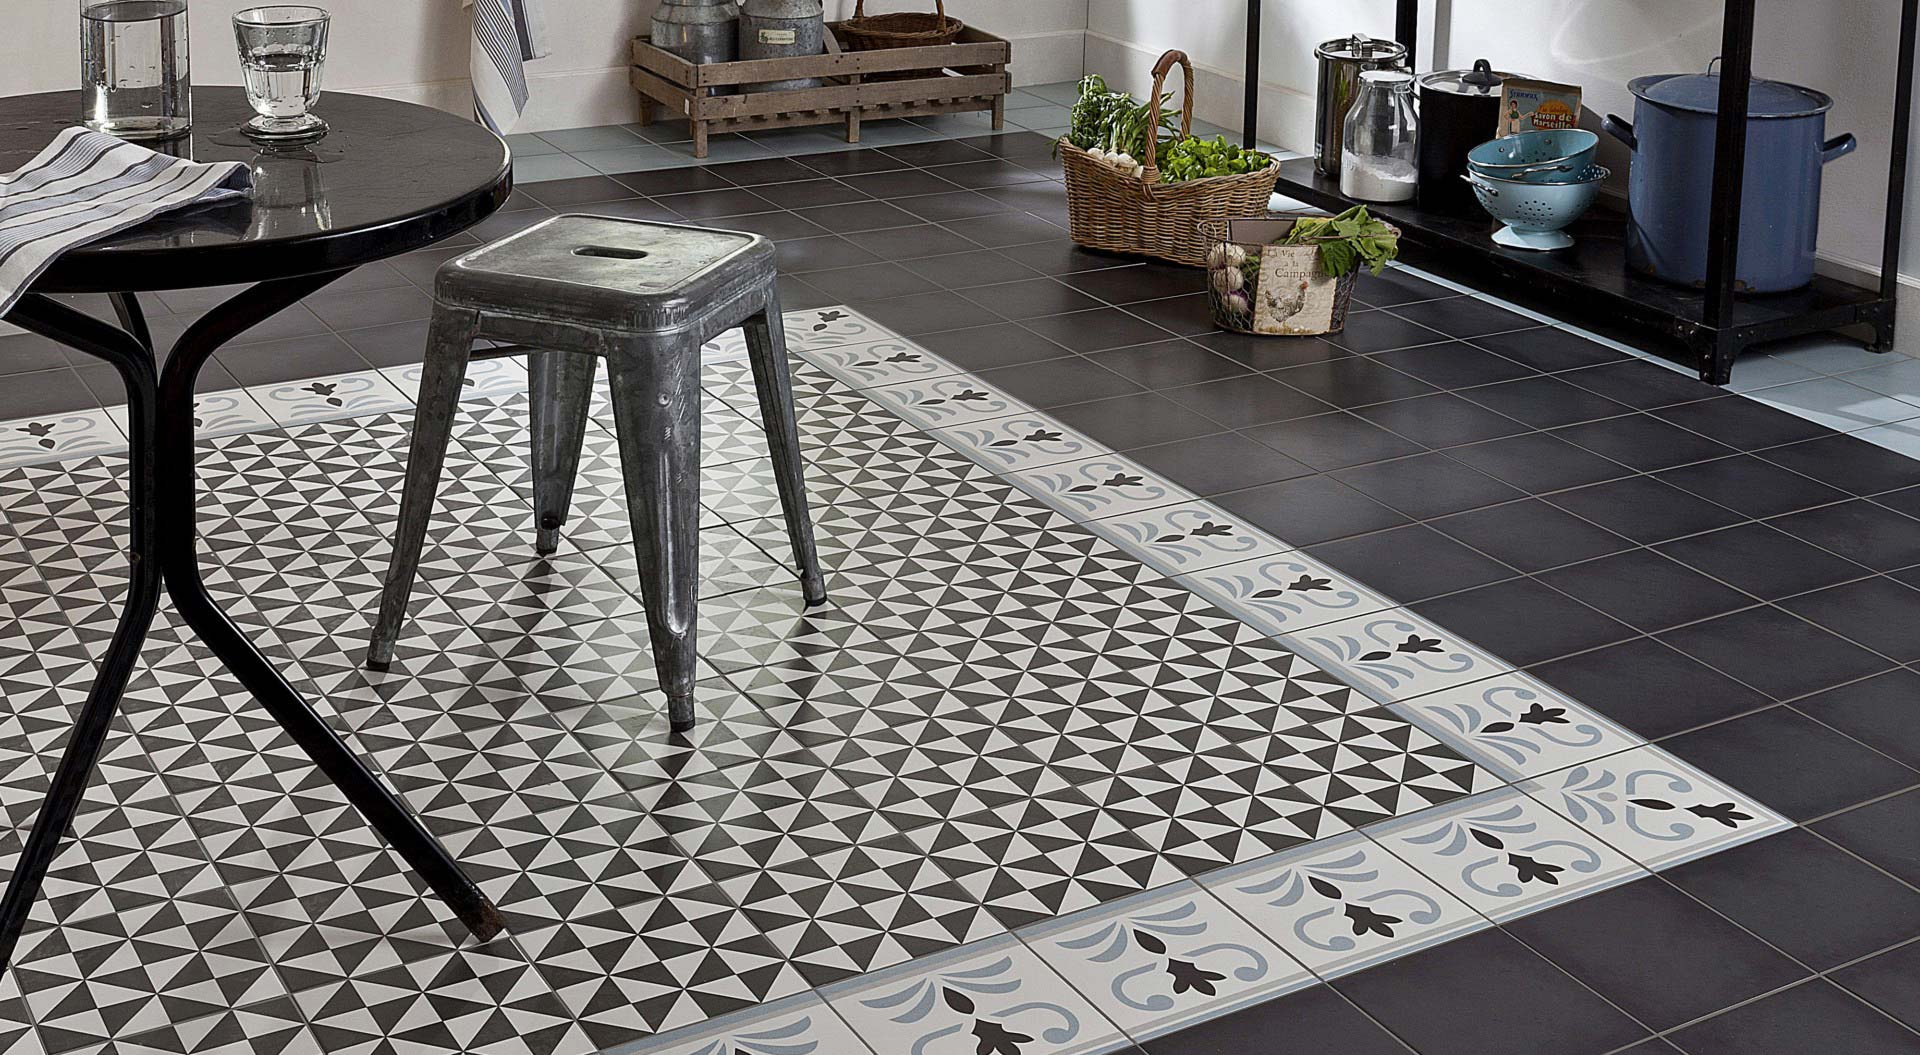 Tapis en carreaux ciment for Tapis pvc carreaux de ciment